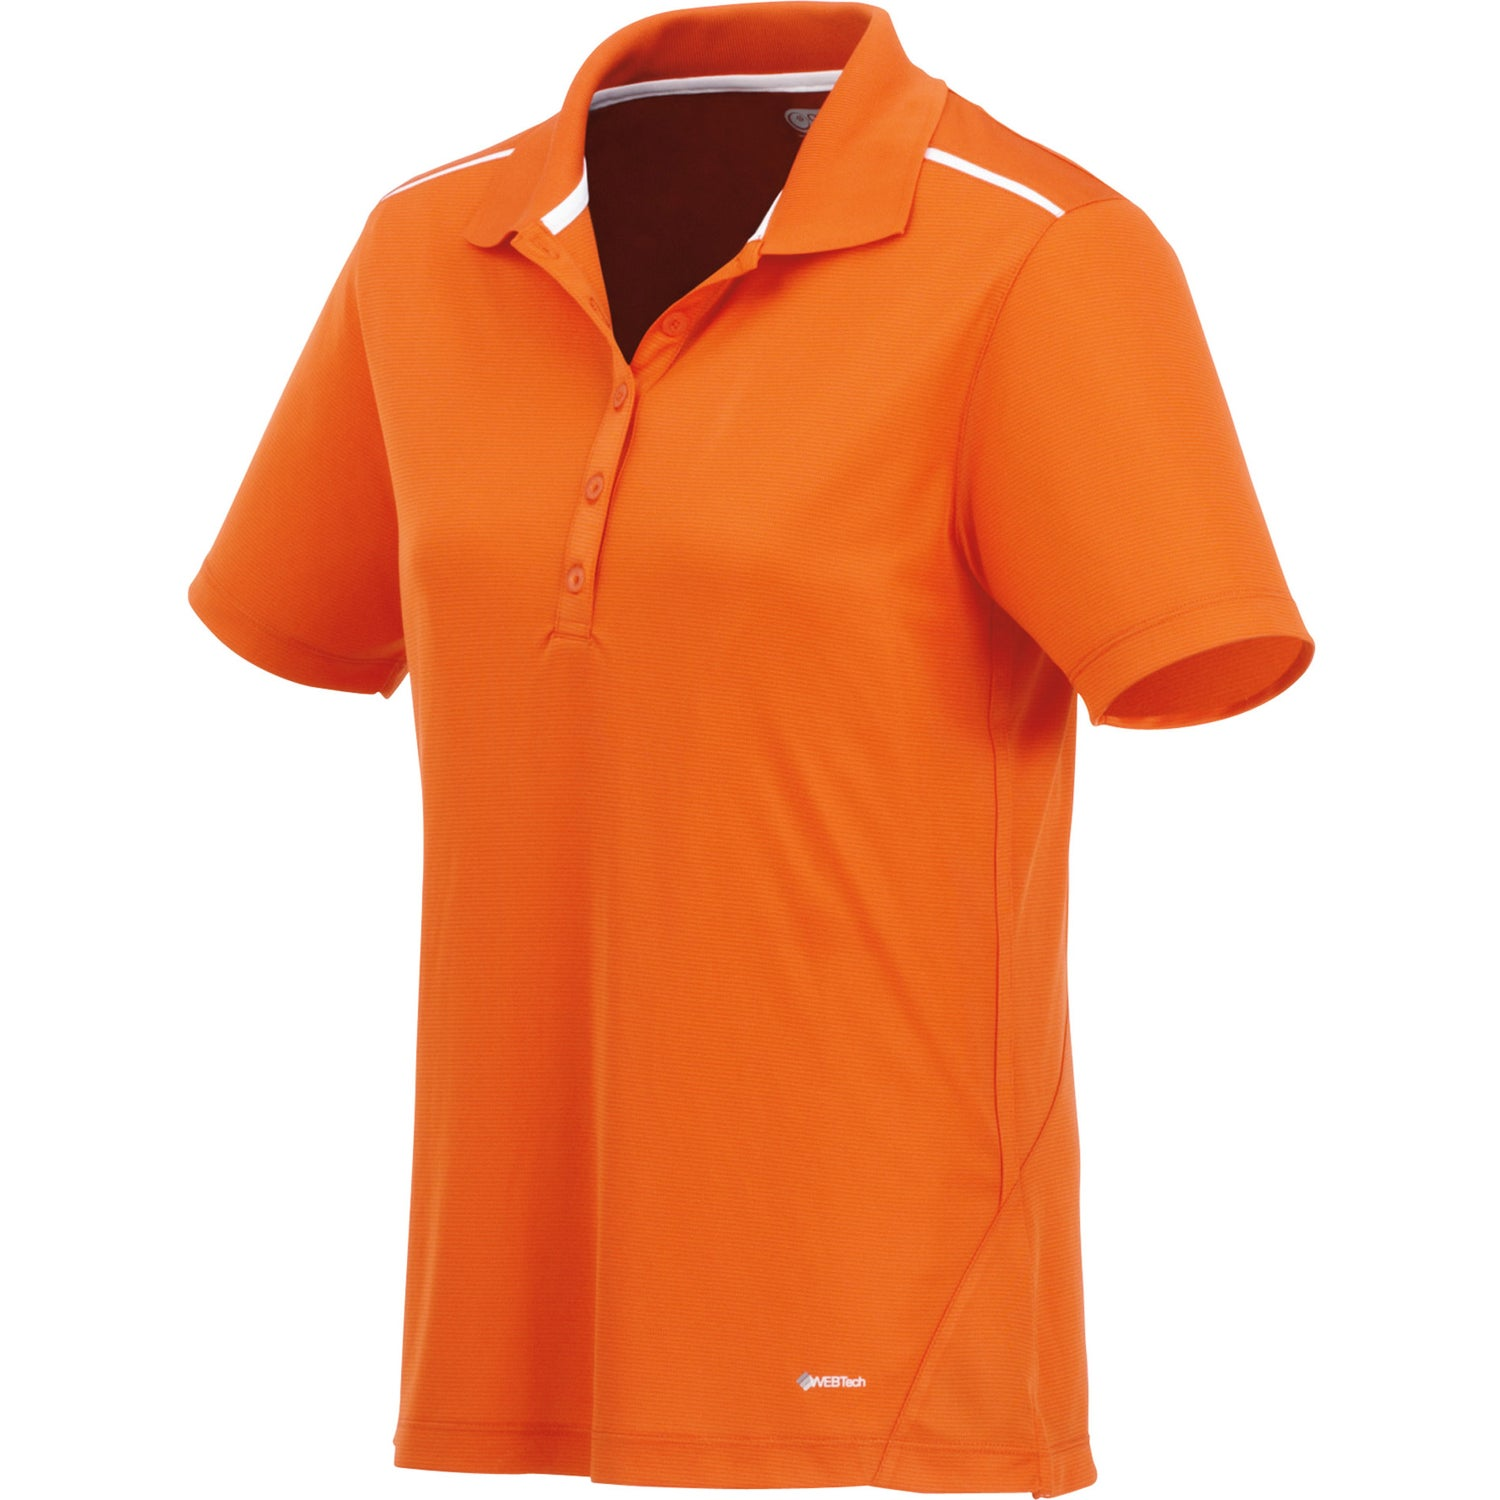 Promotional women 39 s albula short sleeve polo shirt by for Custom embroidered polo shirts no minimum order